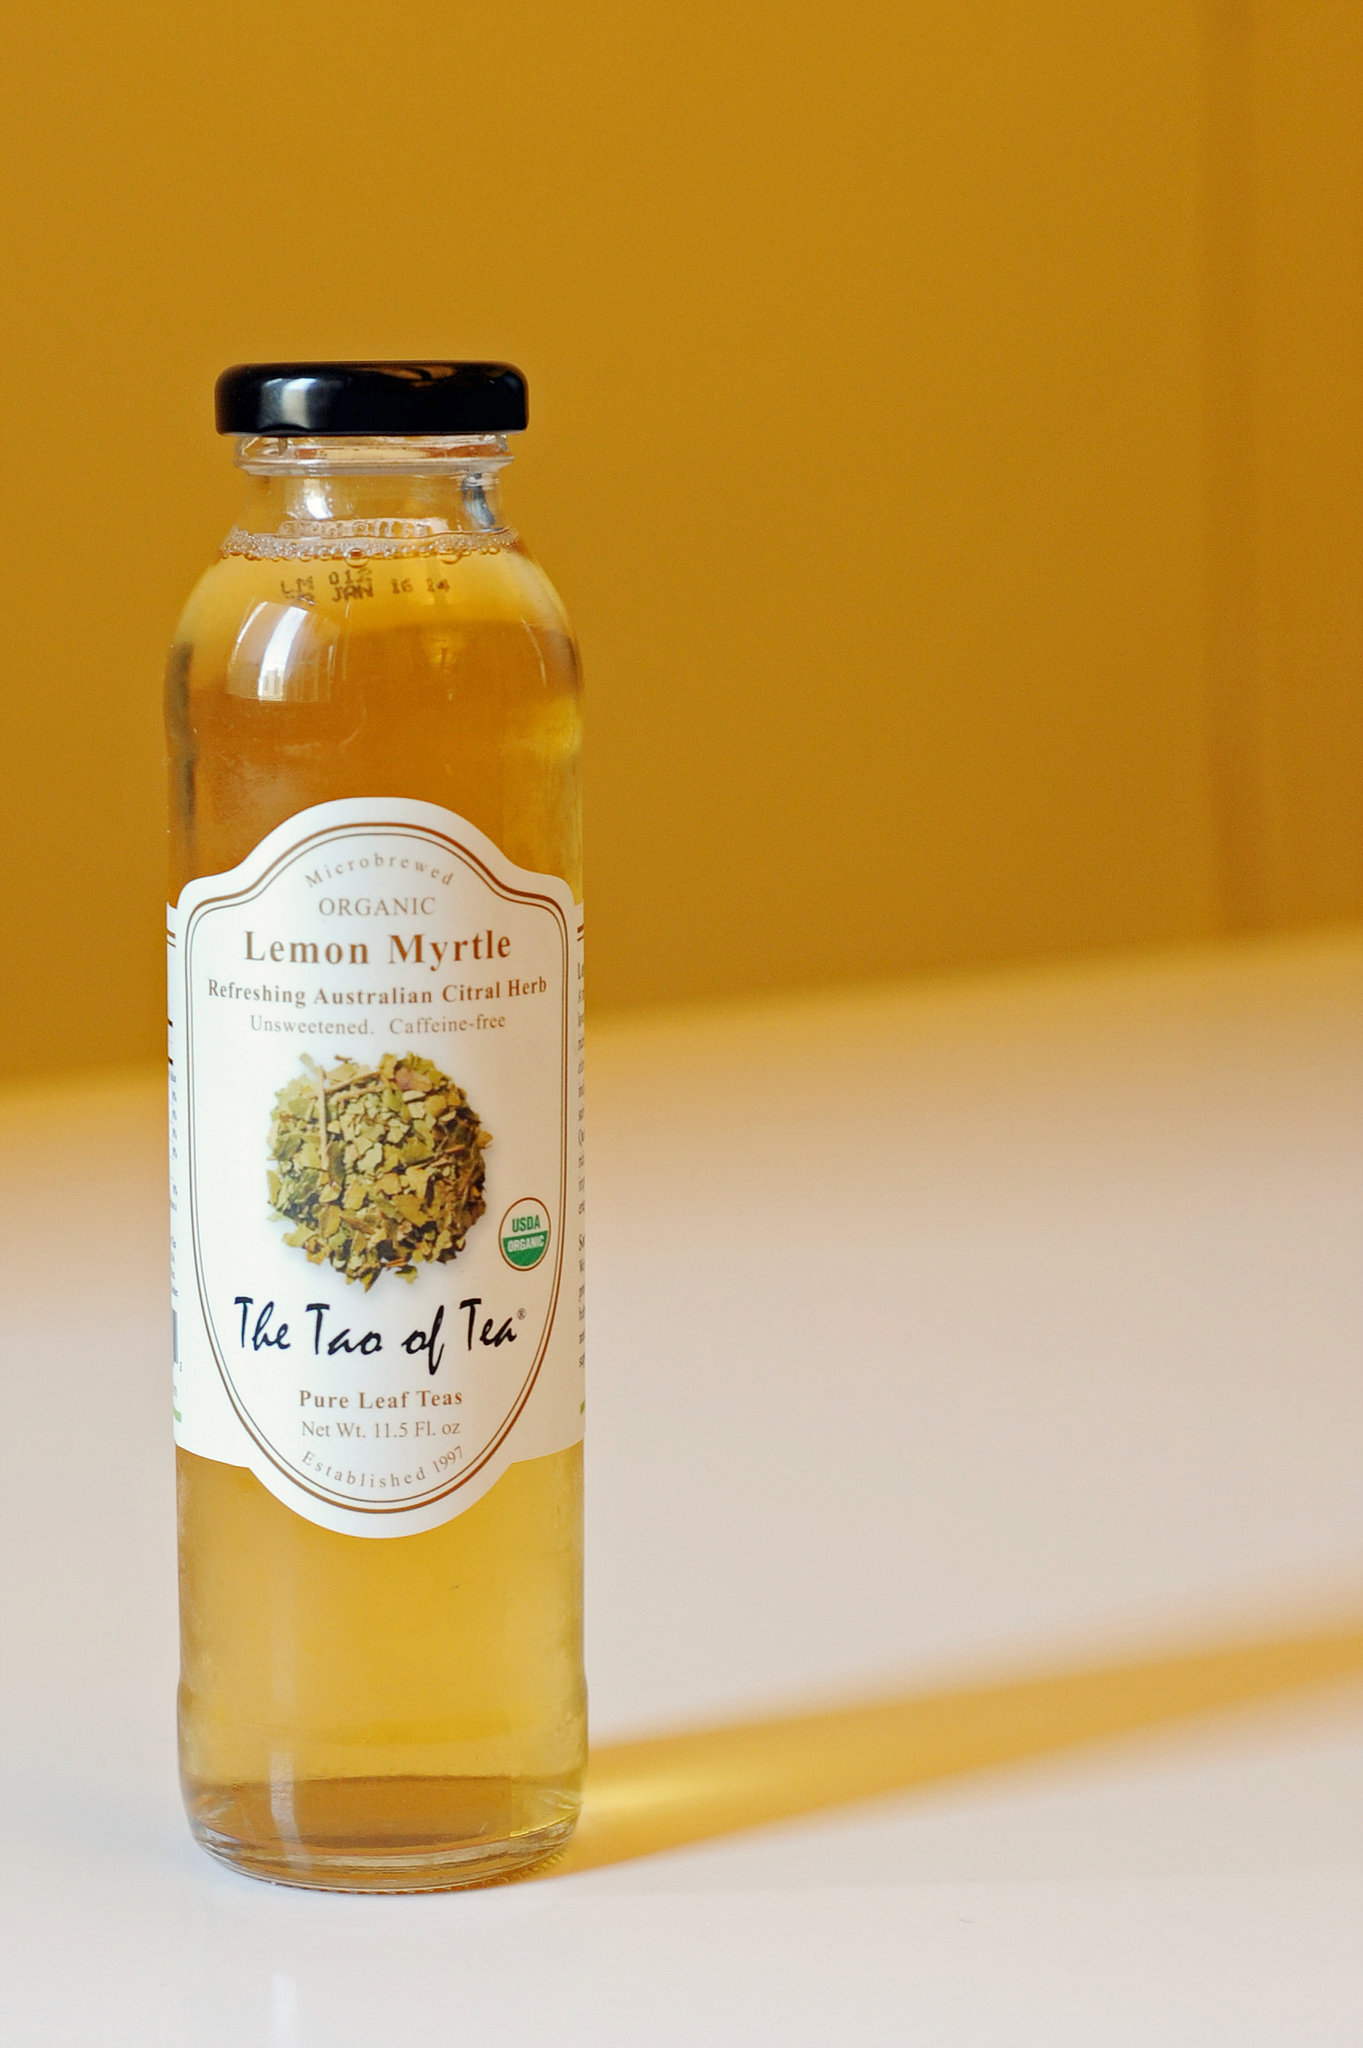 The Tao of Tea Lemon Myrtle